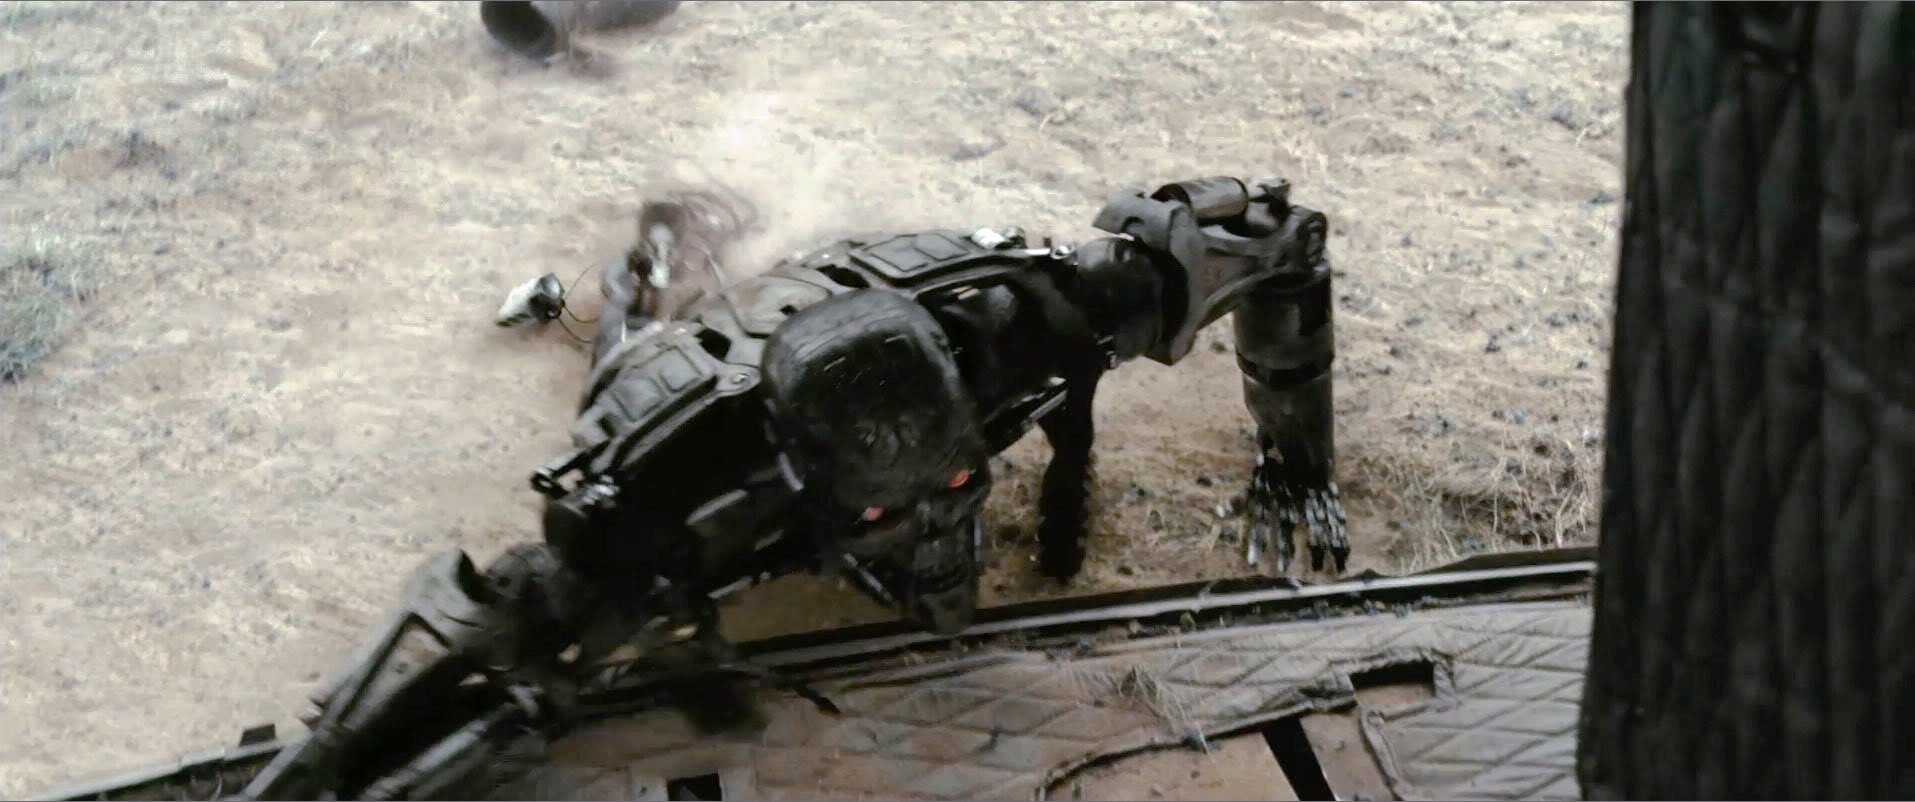 Damaged T-600 | Terminator Wiki | FANDOM powered by Wikia